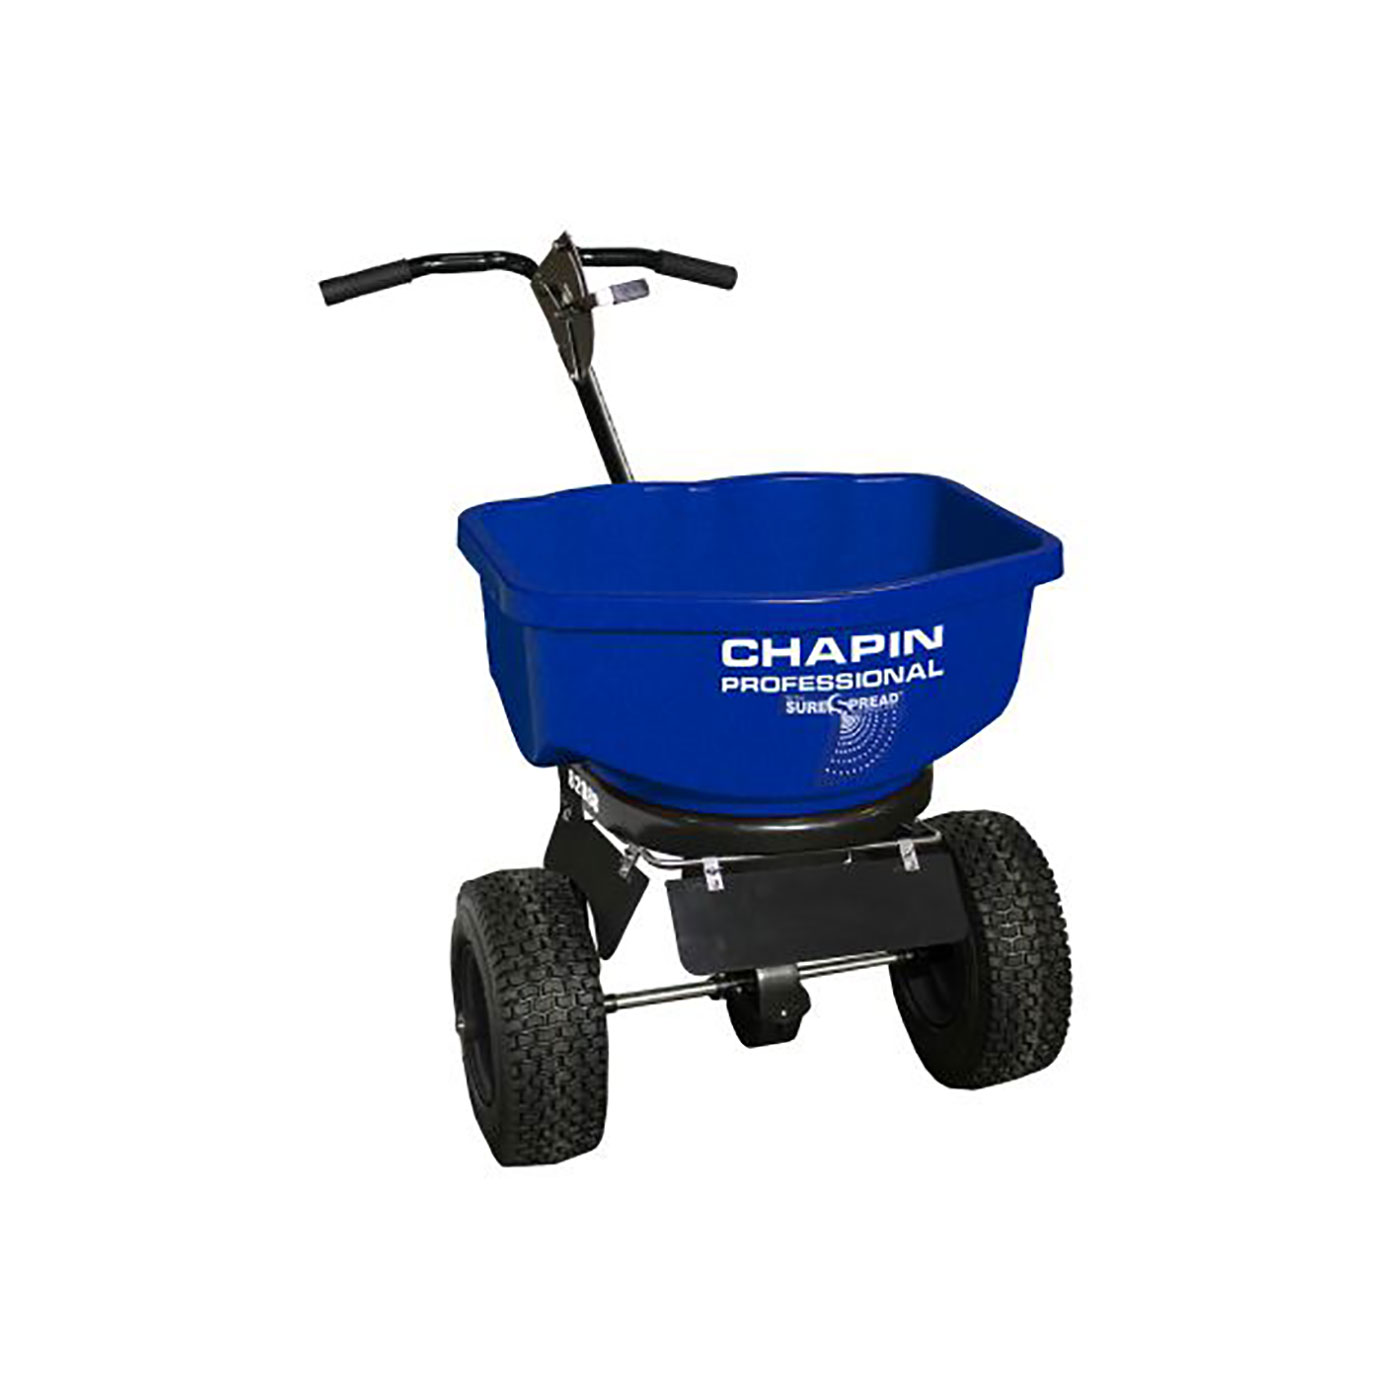 Chapin 80 lb Salt & Ice Melt Spreader